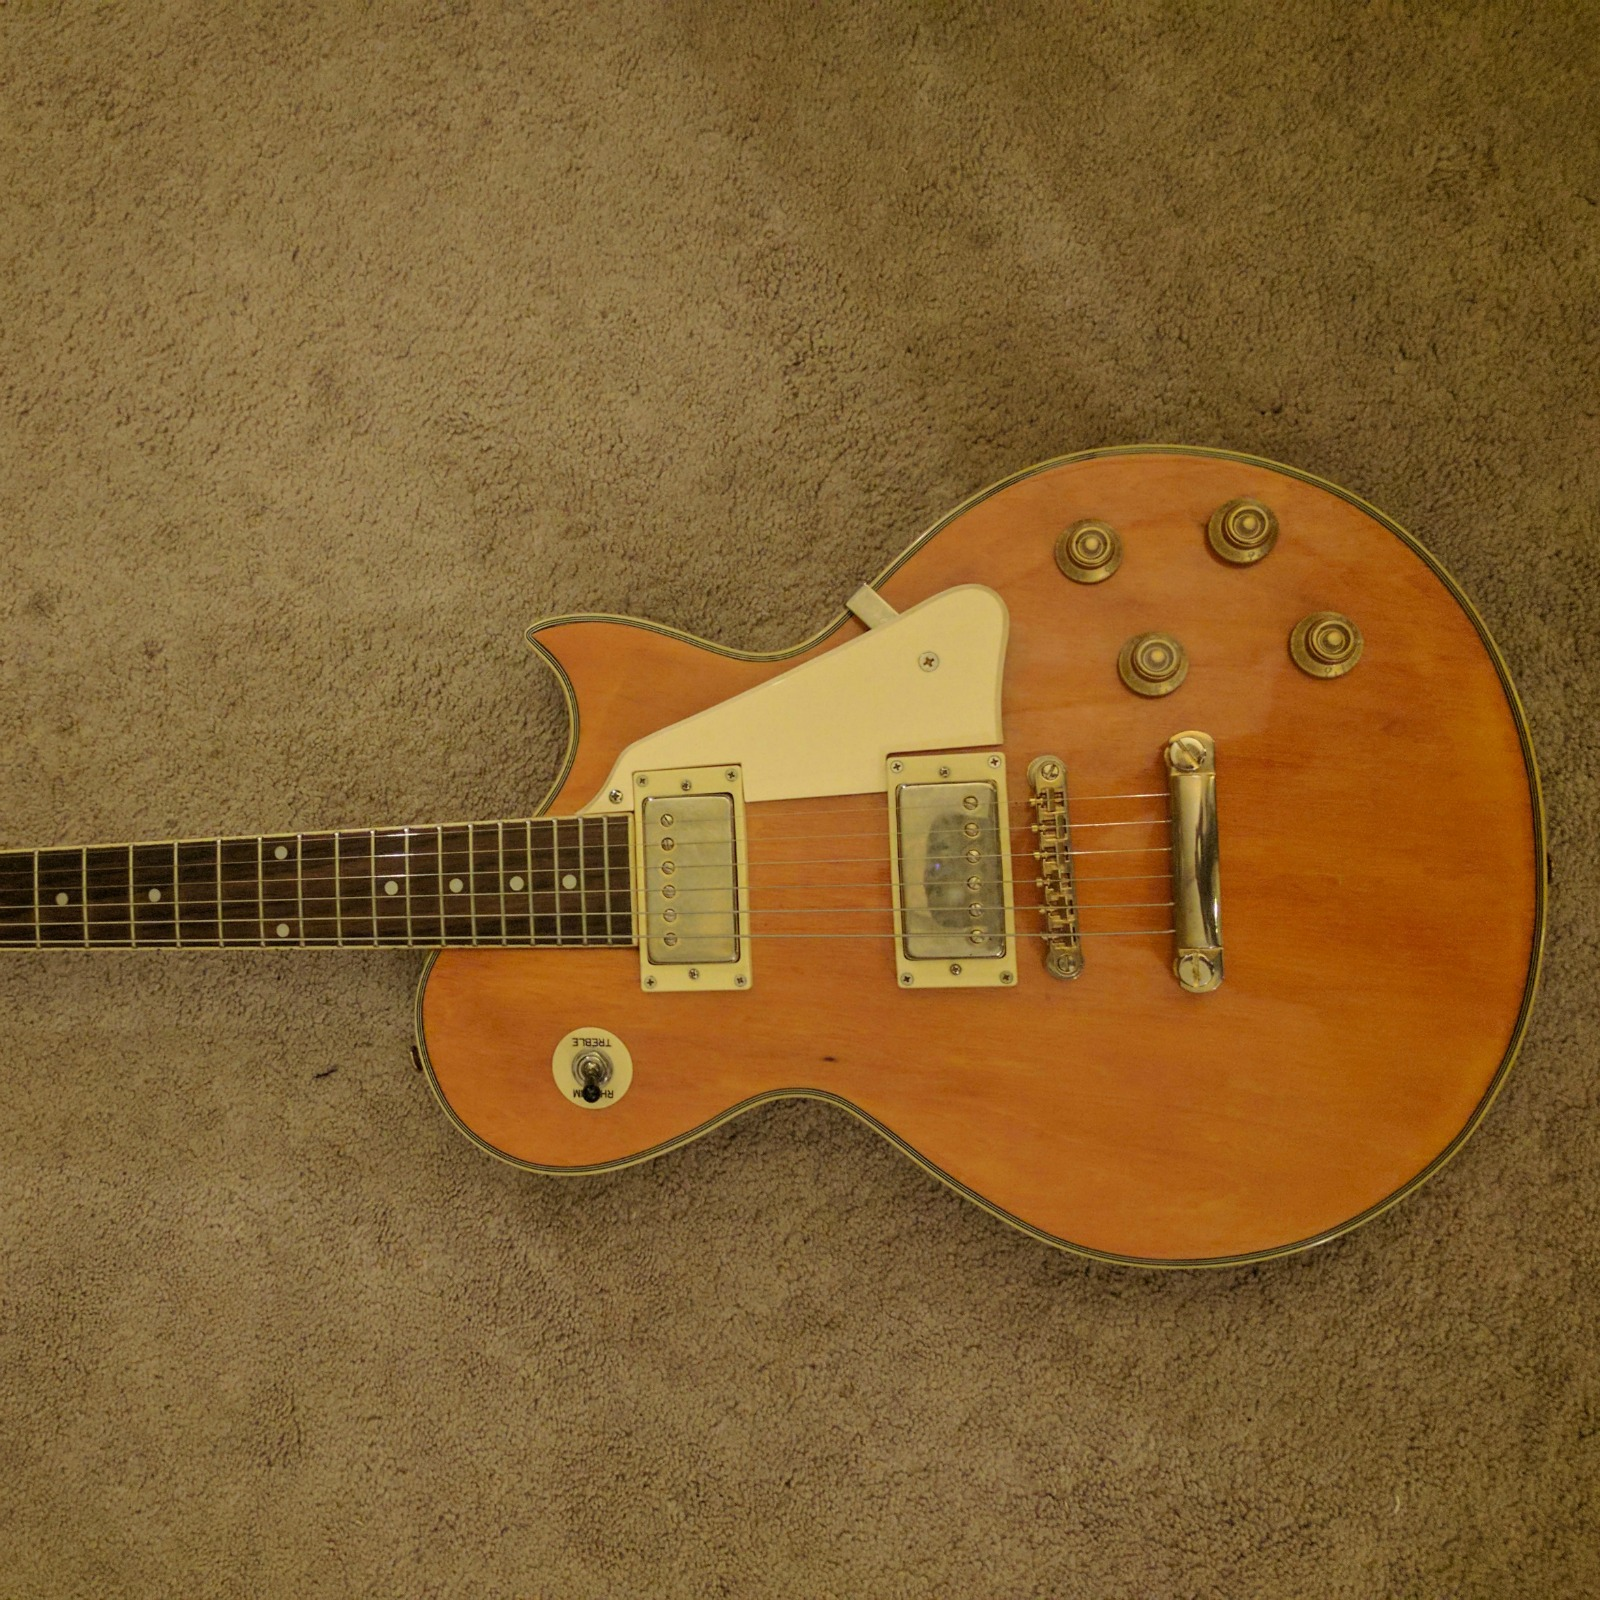 Help identifying a Japanese Les Paul style Guitar - Electric